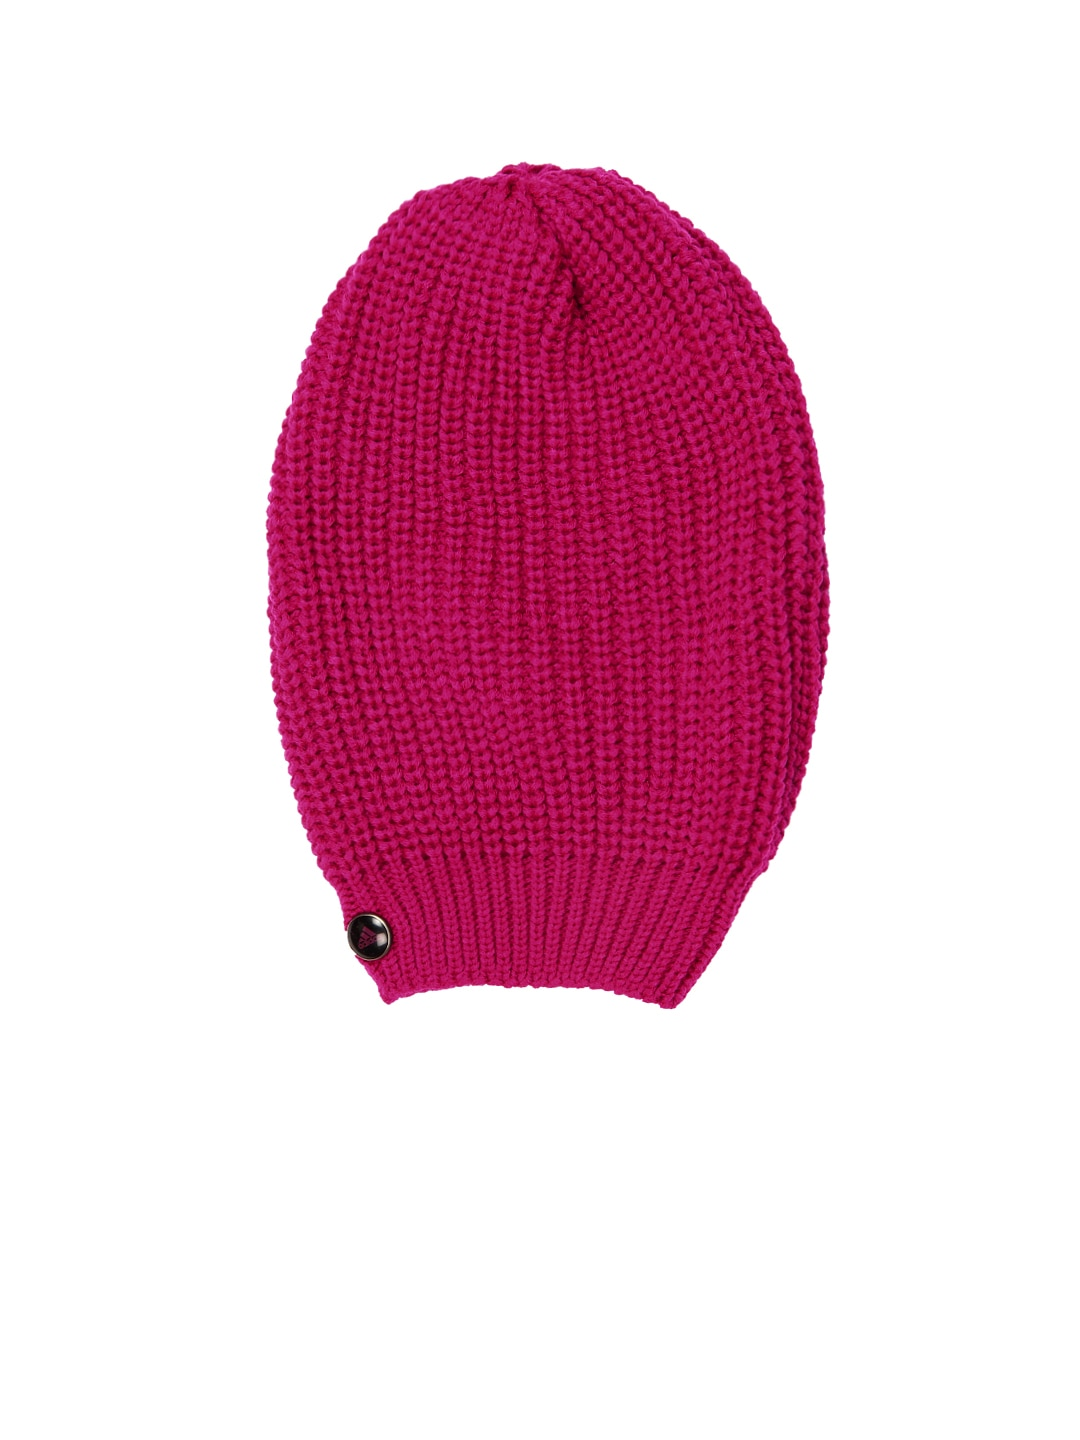 Adidas Adidas Performance Women Pink Beanie (Multicolor)